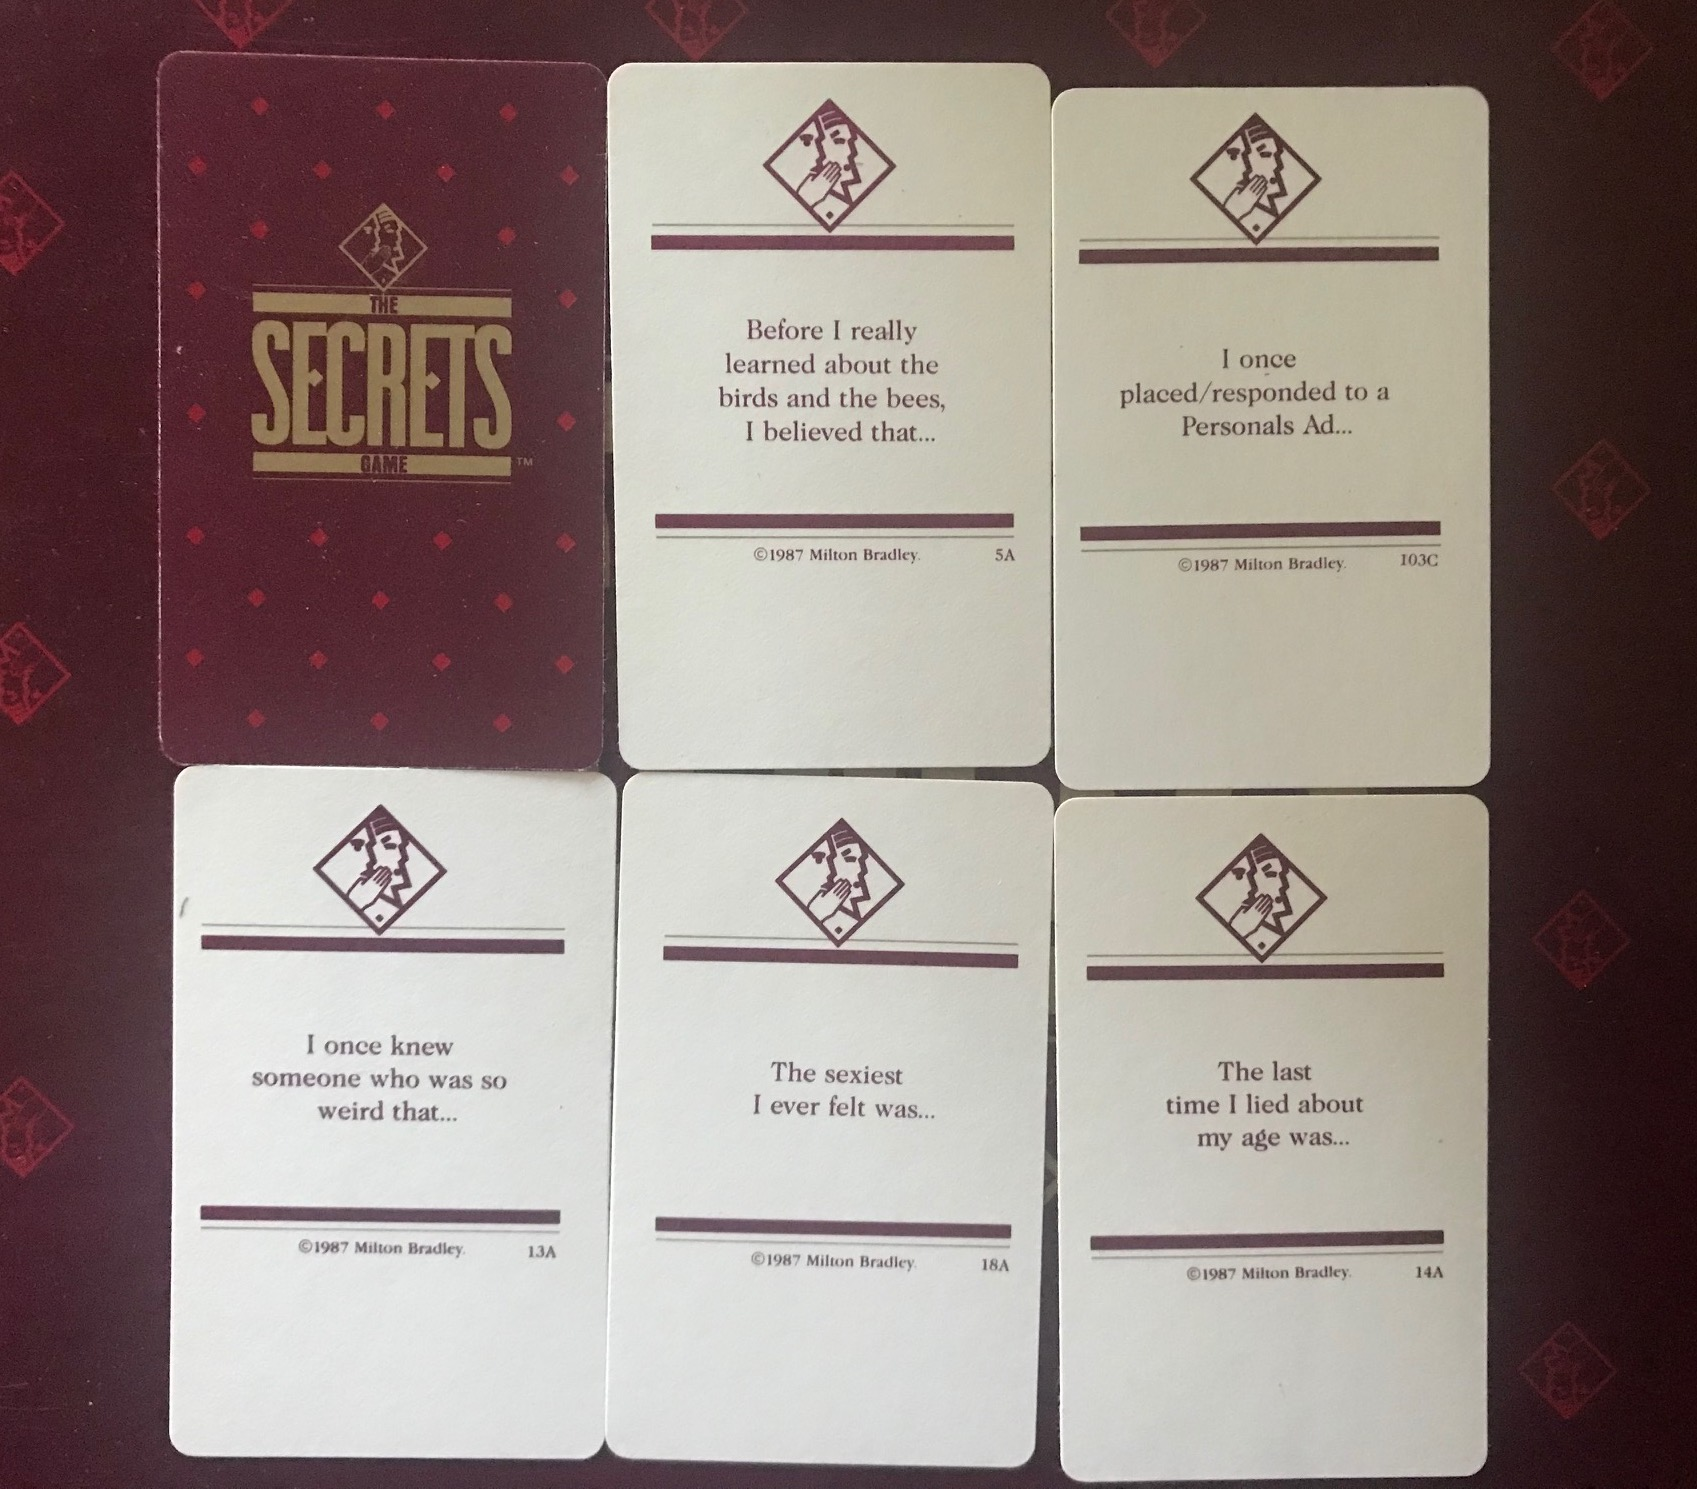 """Some of the cards including things like """"The last time I lied about my age was..."""""""